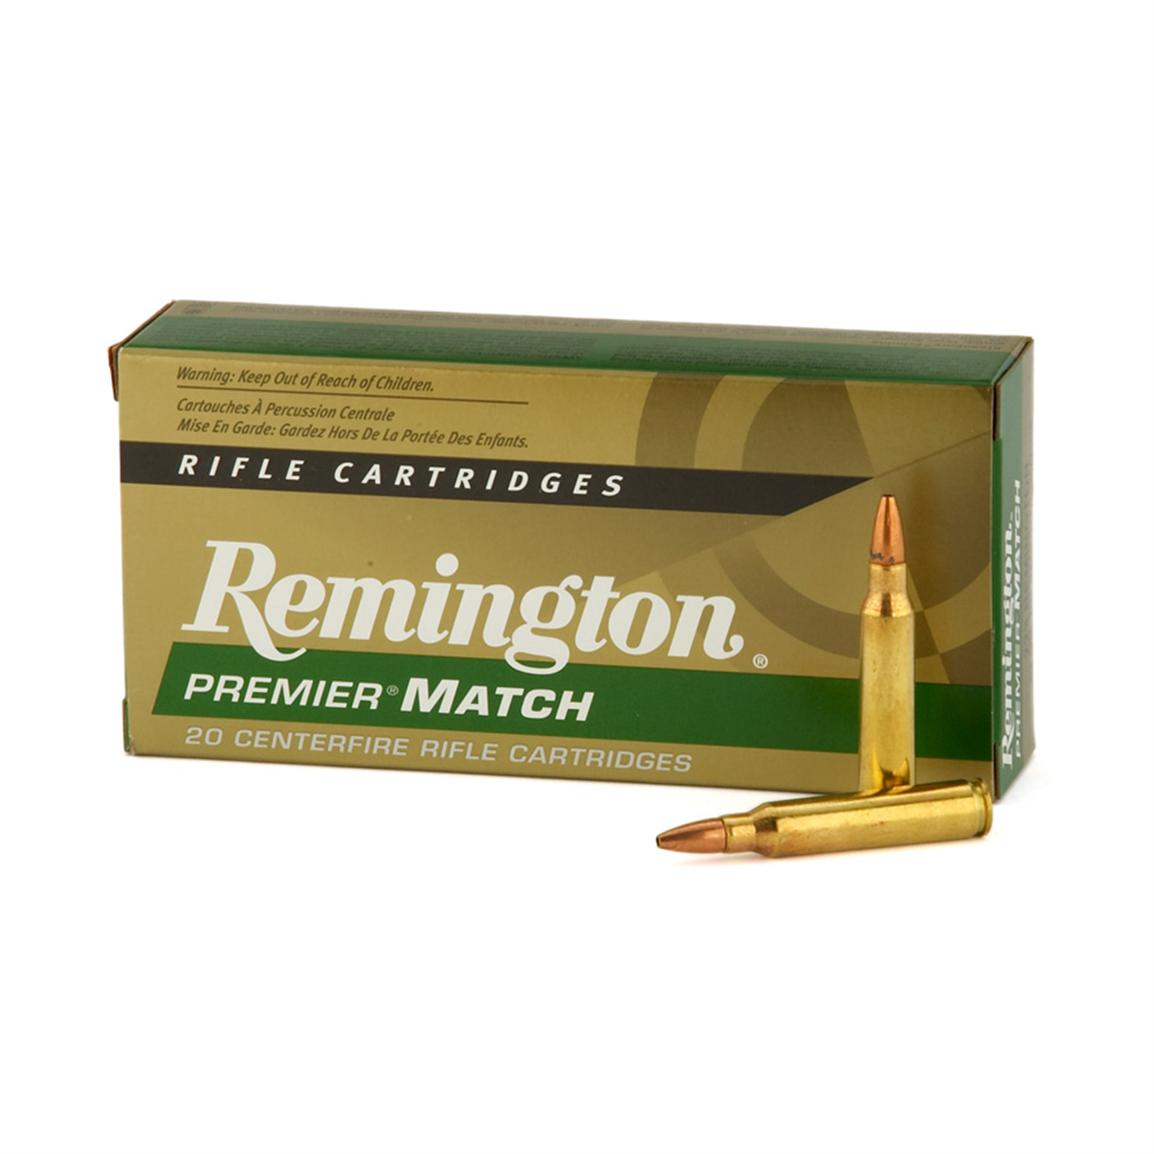 Remington Premier Match Rifle .223 Rem. Match 62 Grain HP (Match) 20 rounds